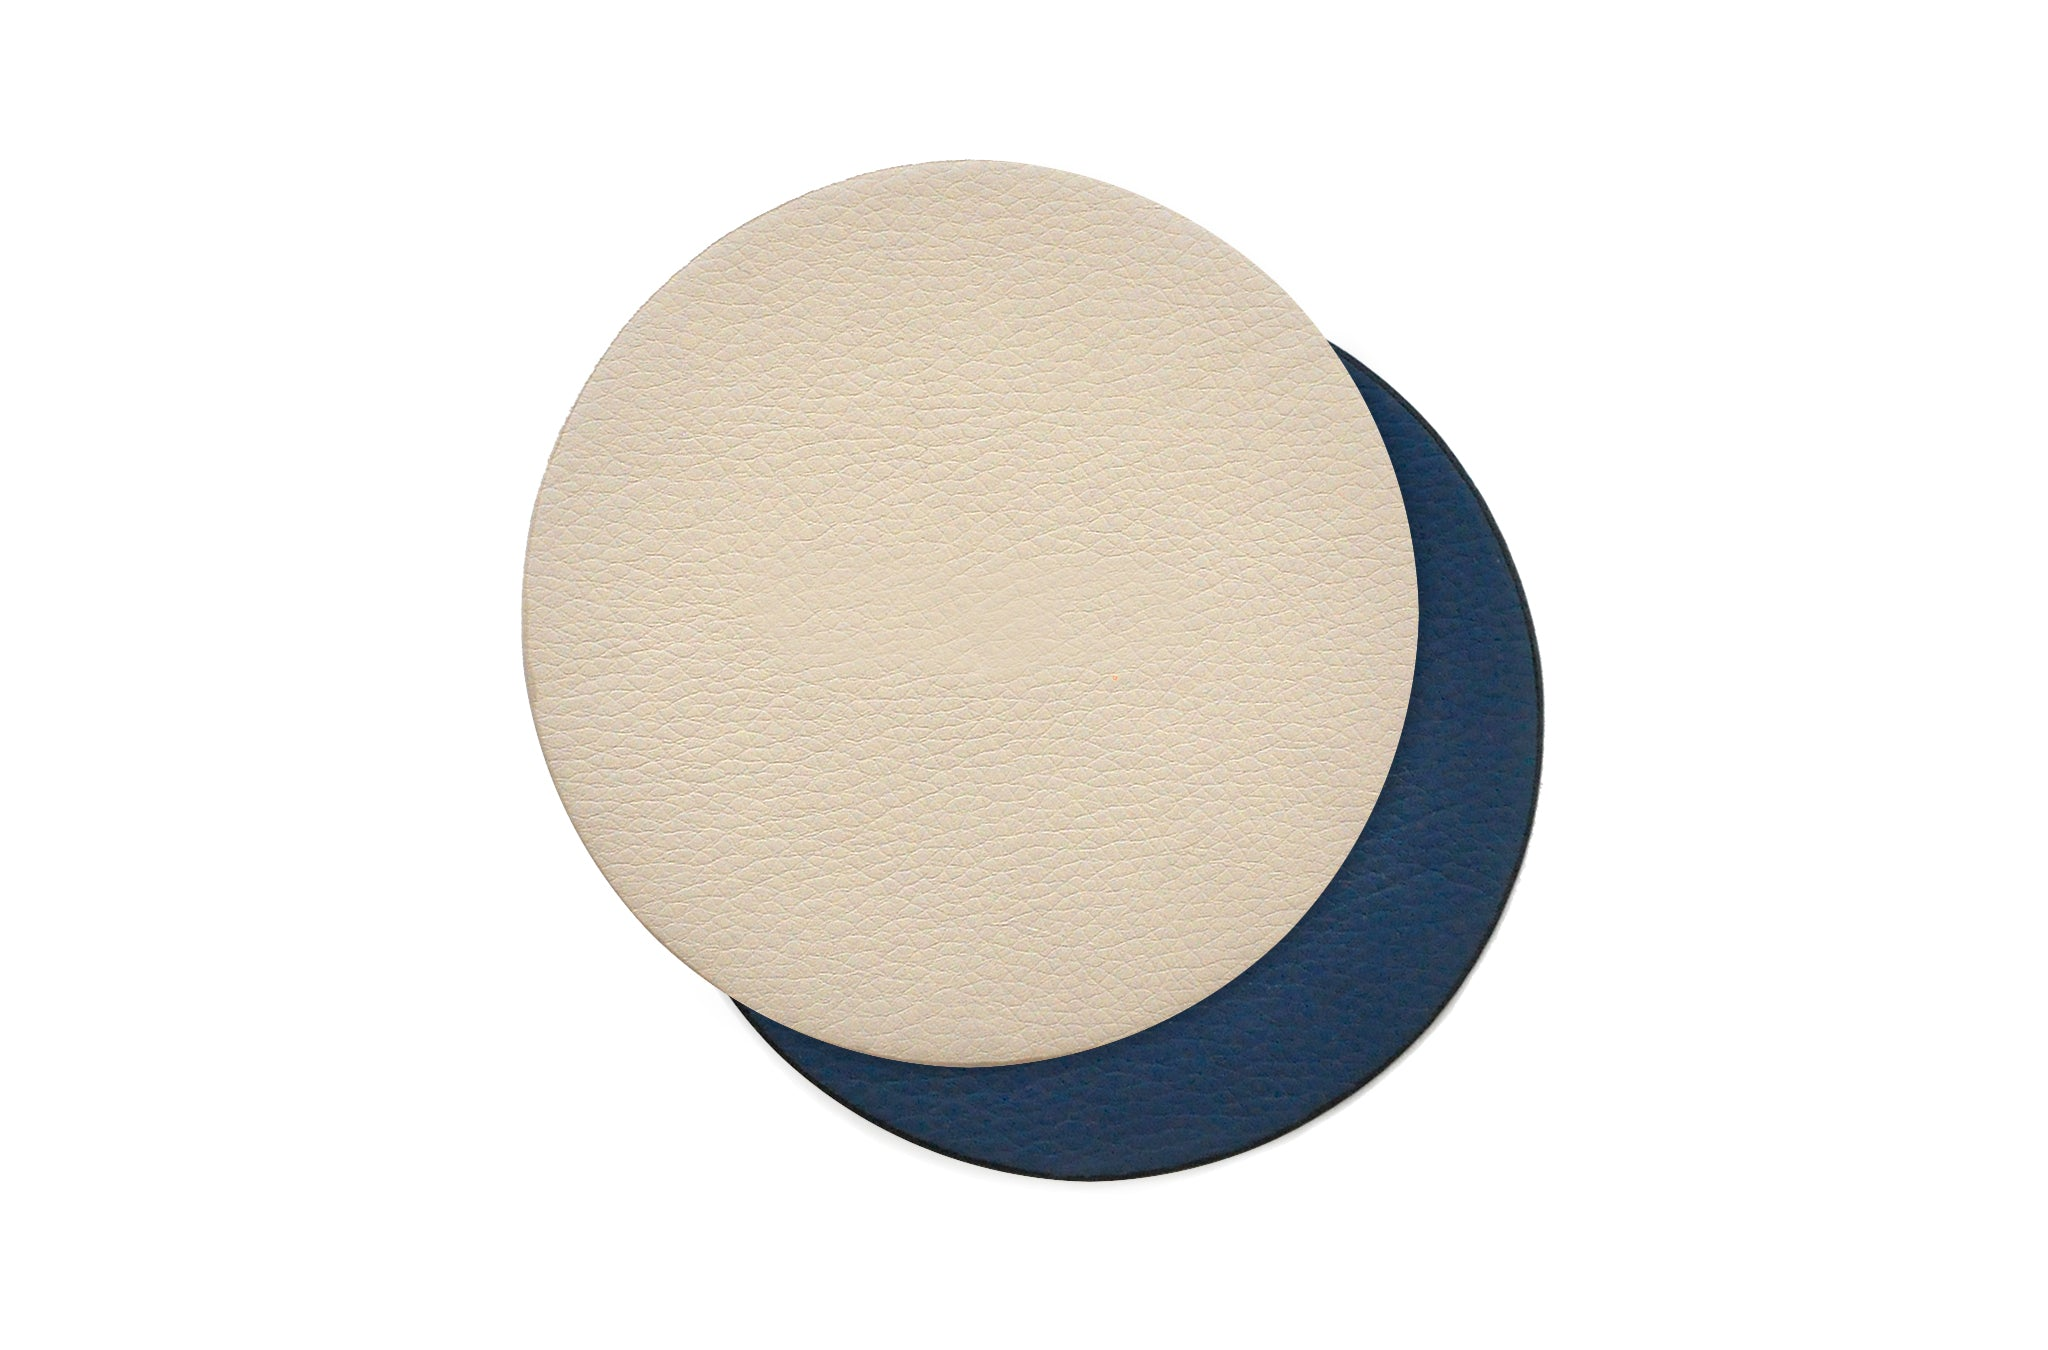 The Coasters in Technik-Leather in Denim & Oat